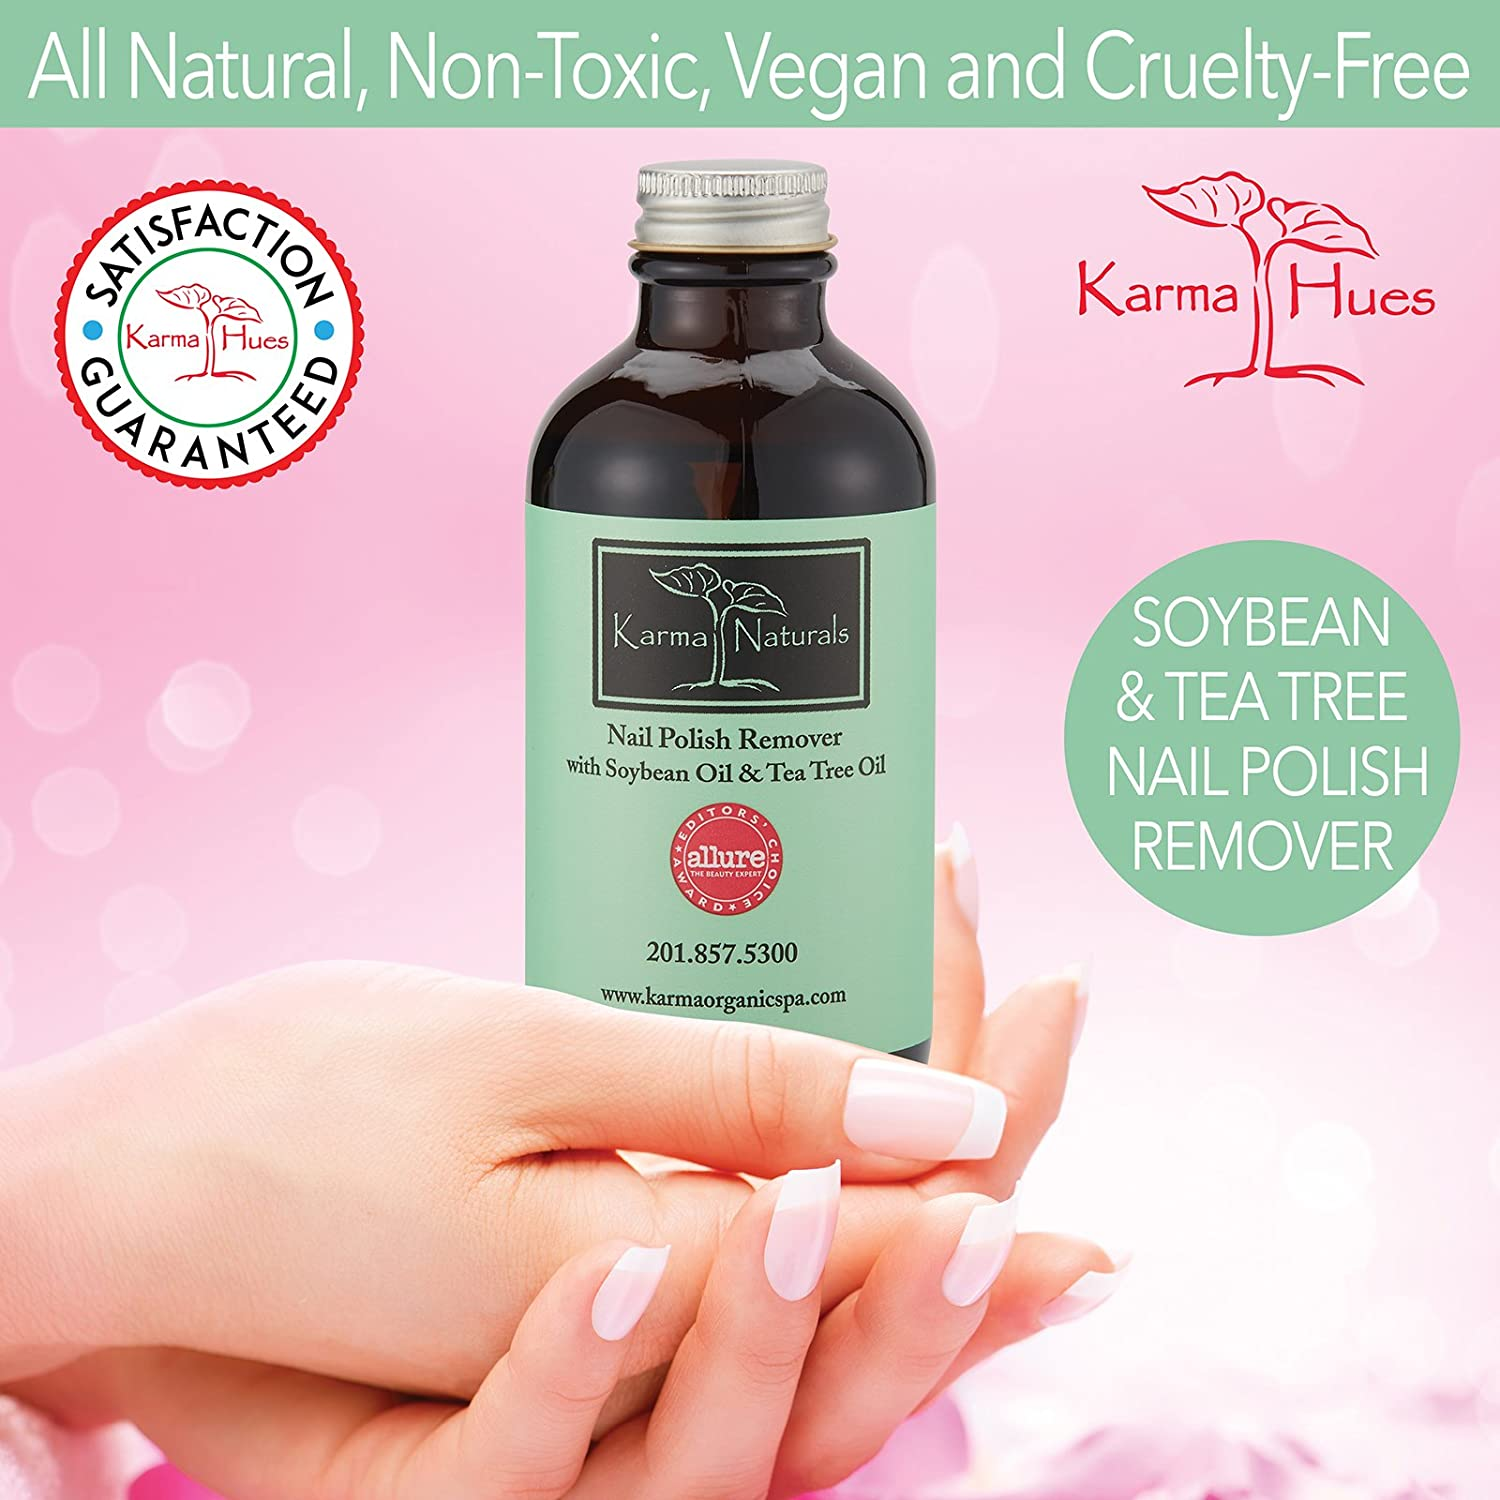 Amazon.com : Karma Naturals Nail Polish Remover with Soybean Oil ...